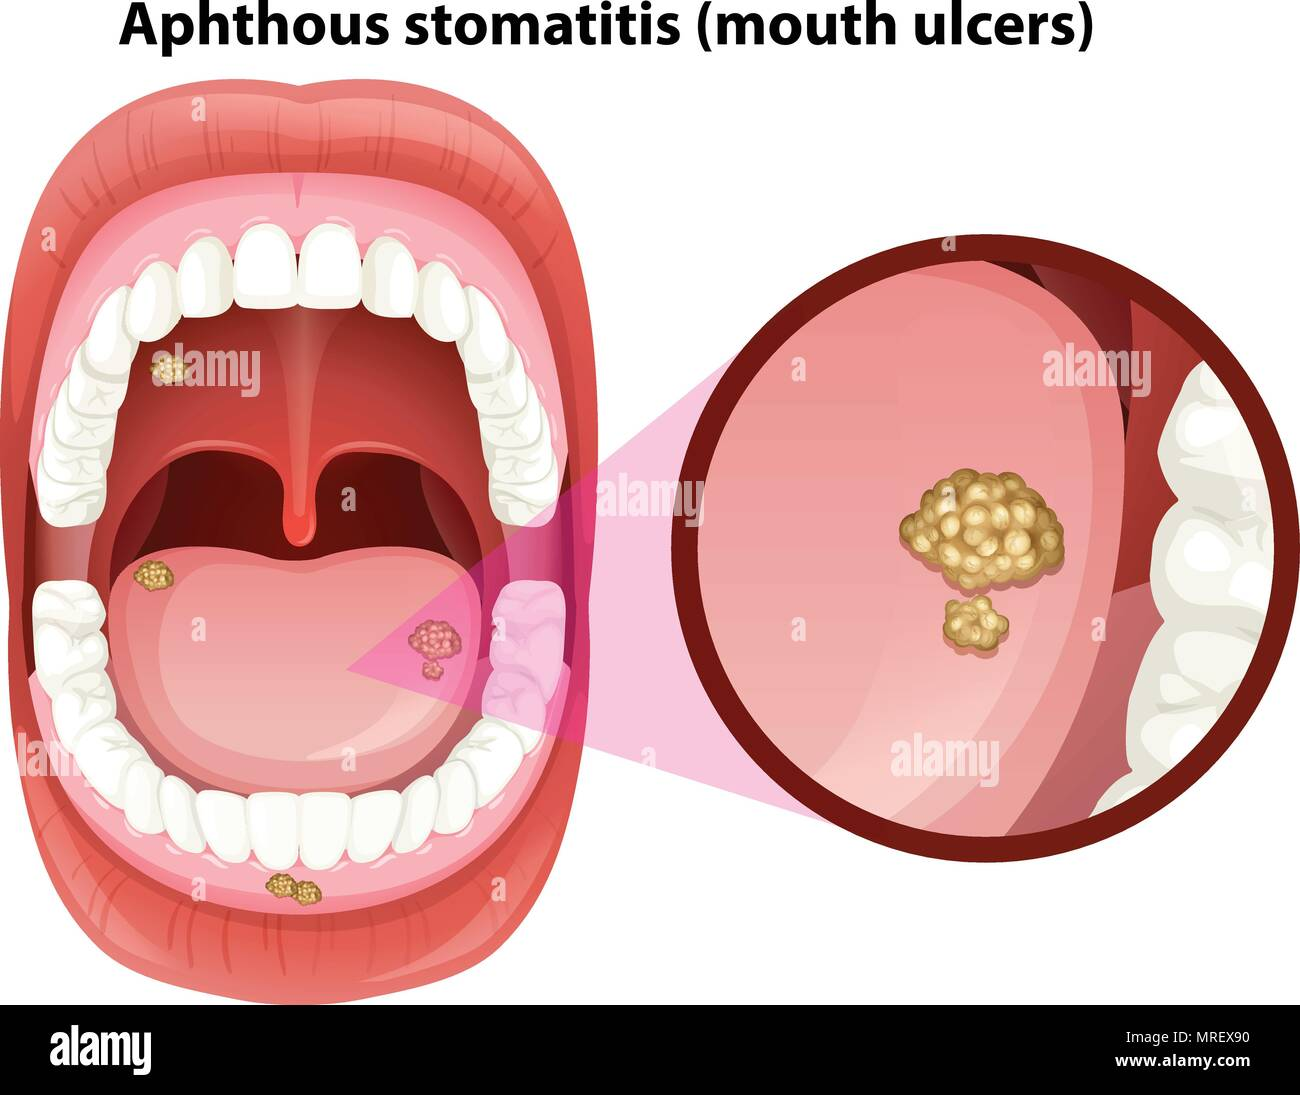 Human Mouth Anatomy of Ulcers illustration Stock Vector Art ...